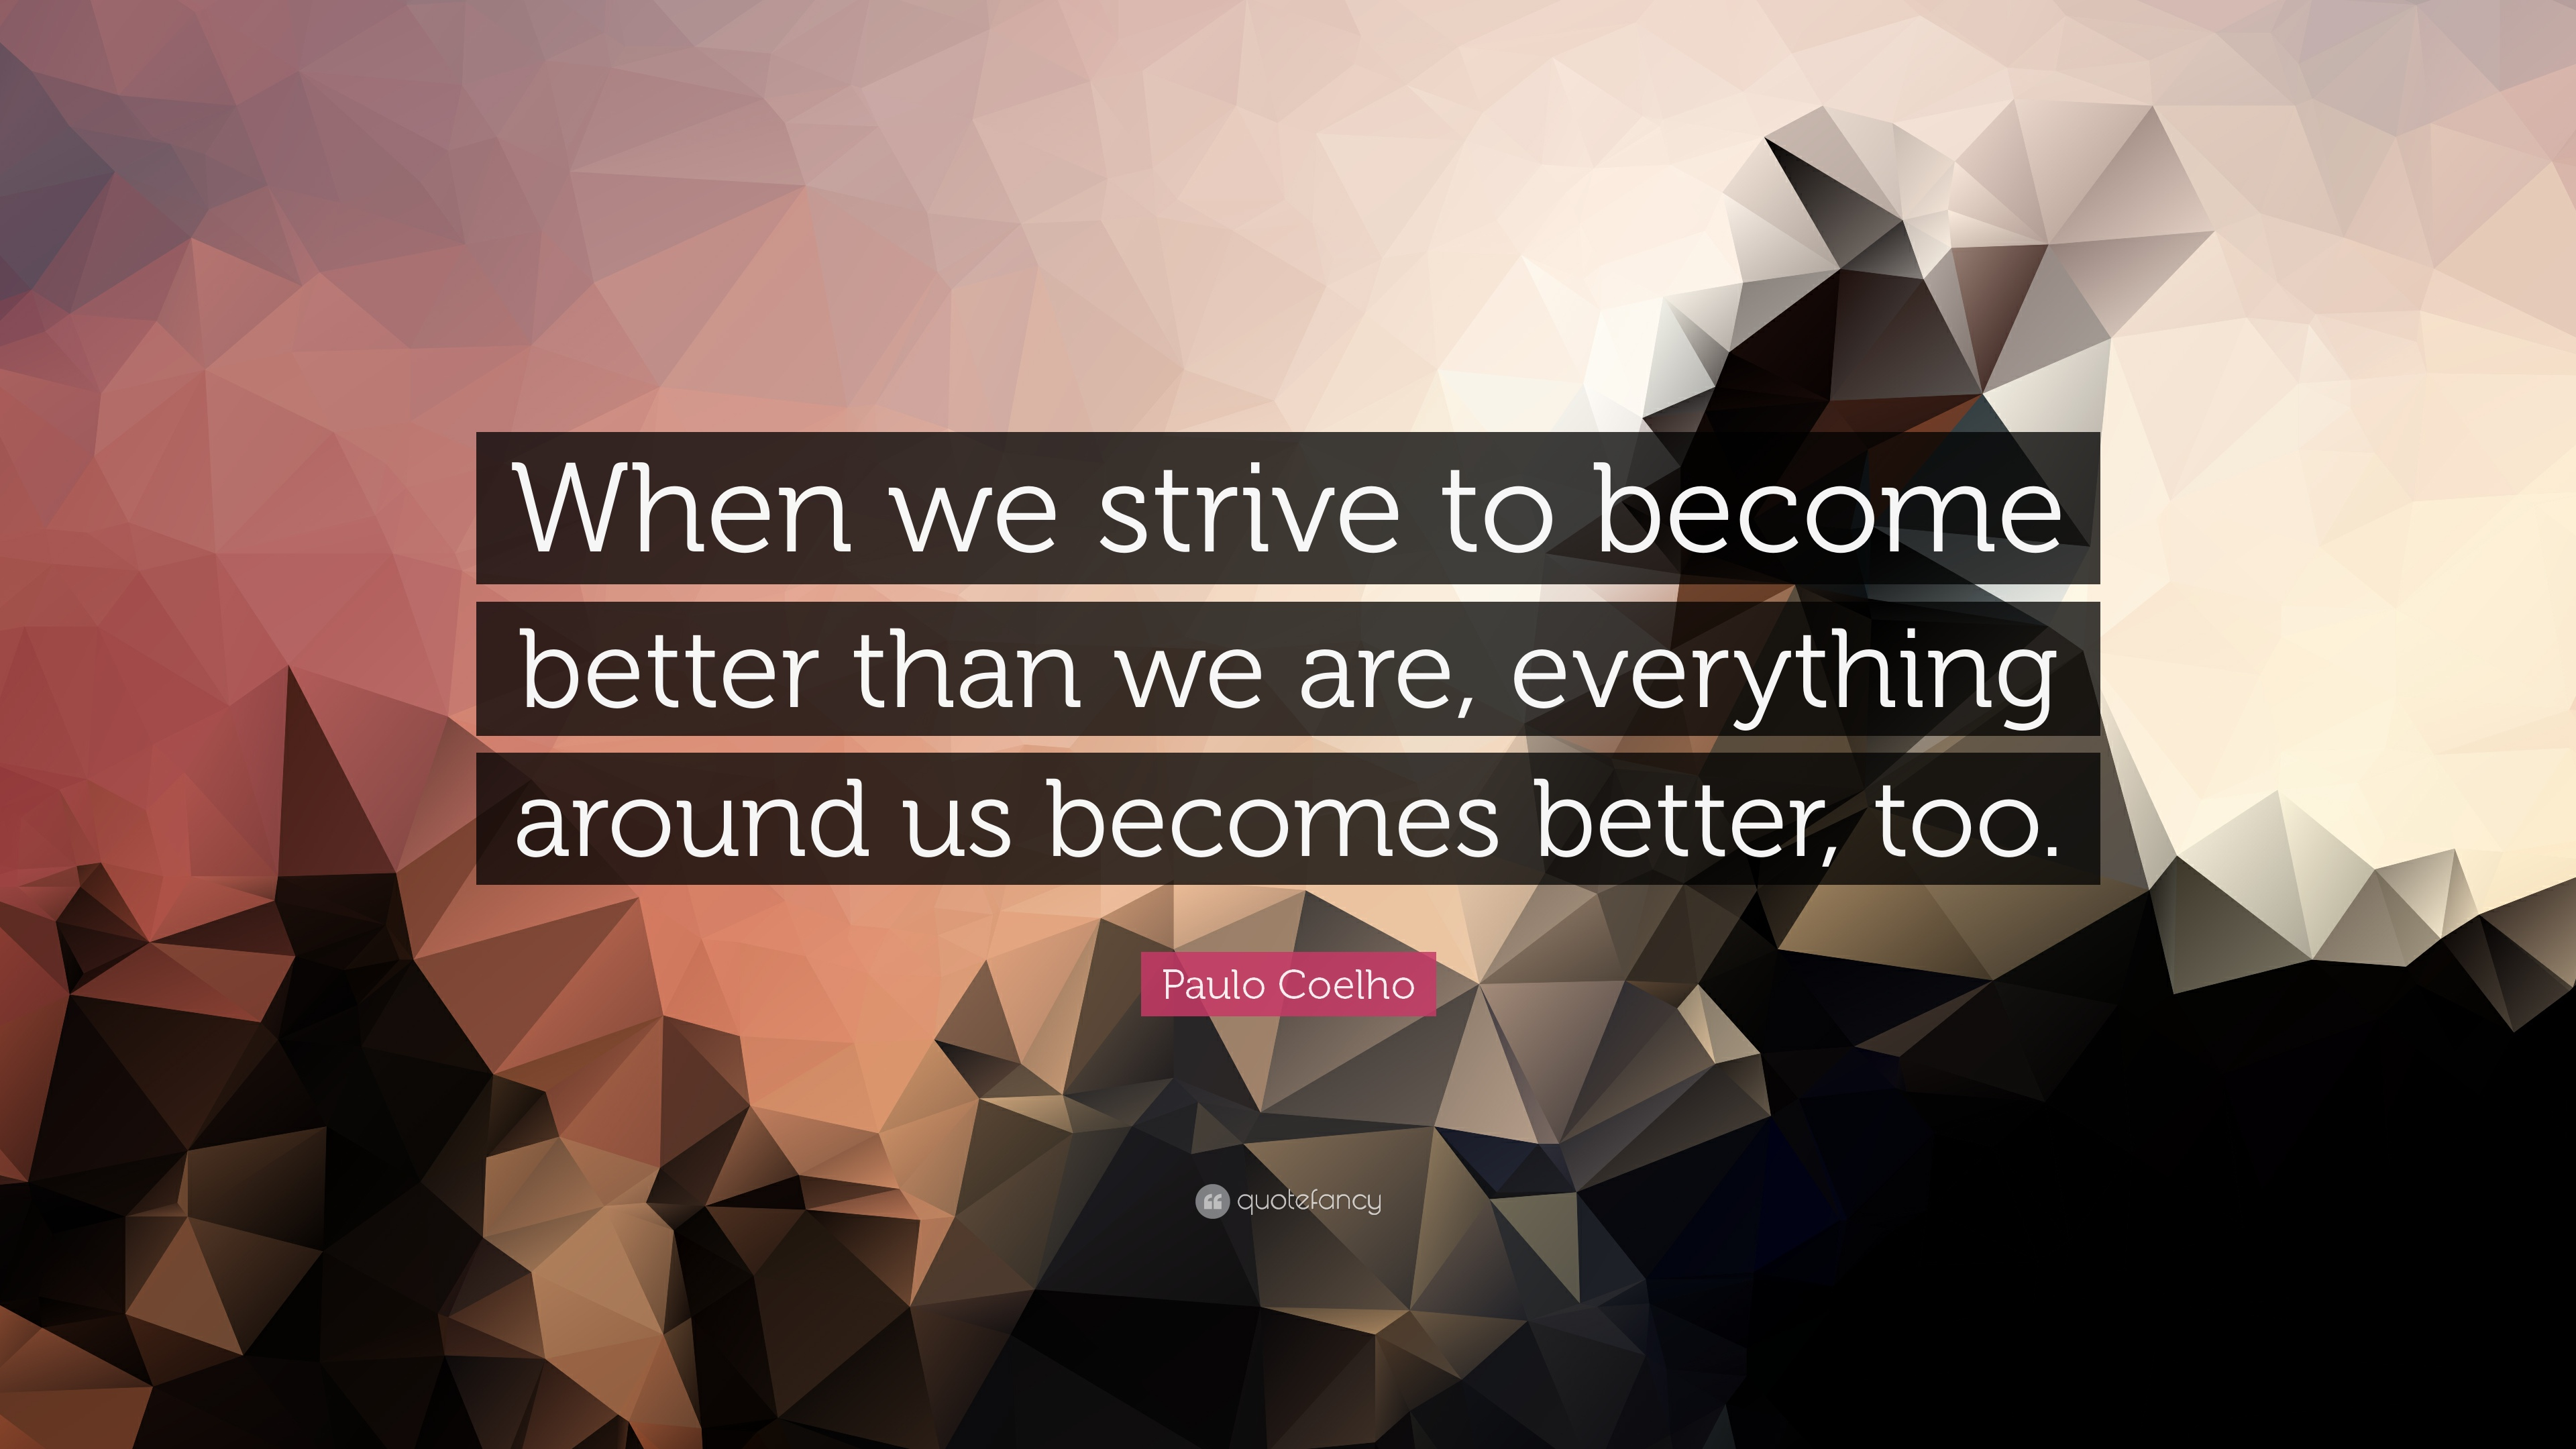 Paulo Coelho Quote When We Strive To Become Better Than We Are